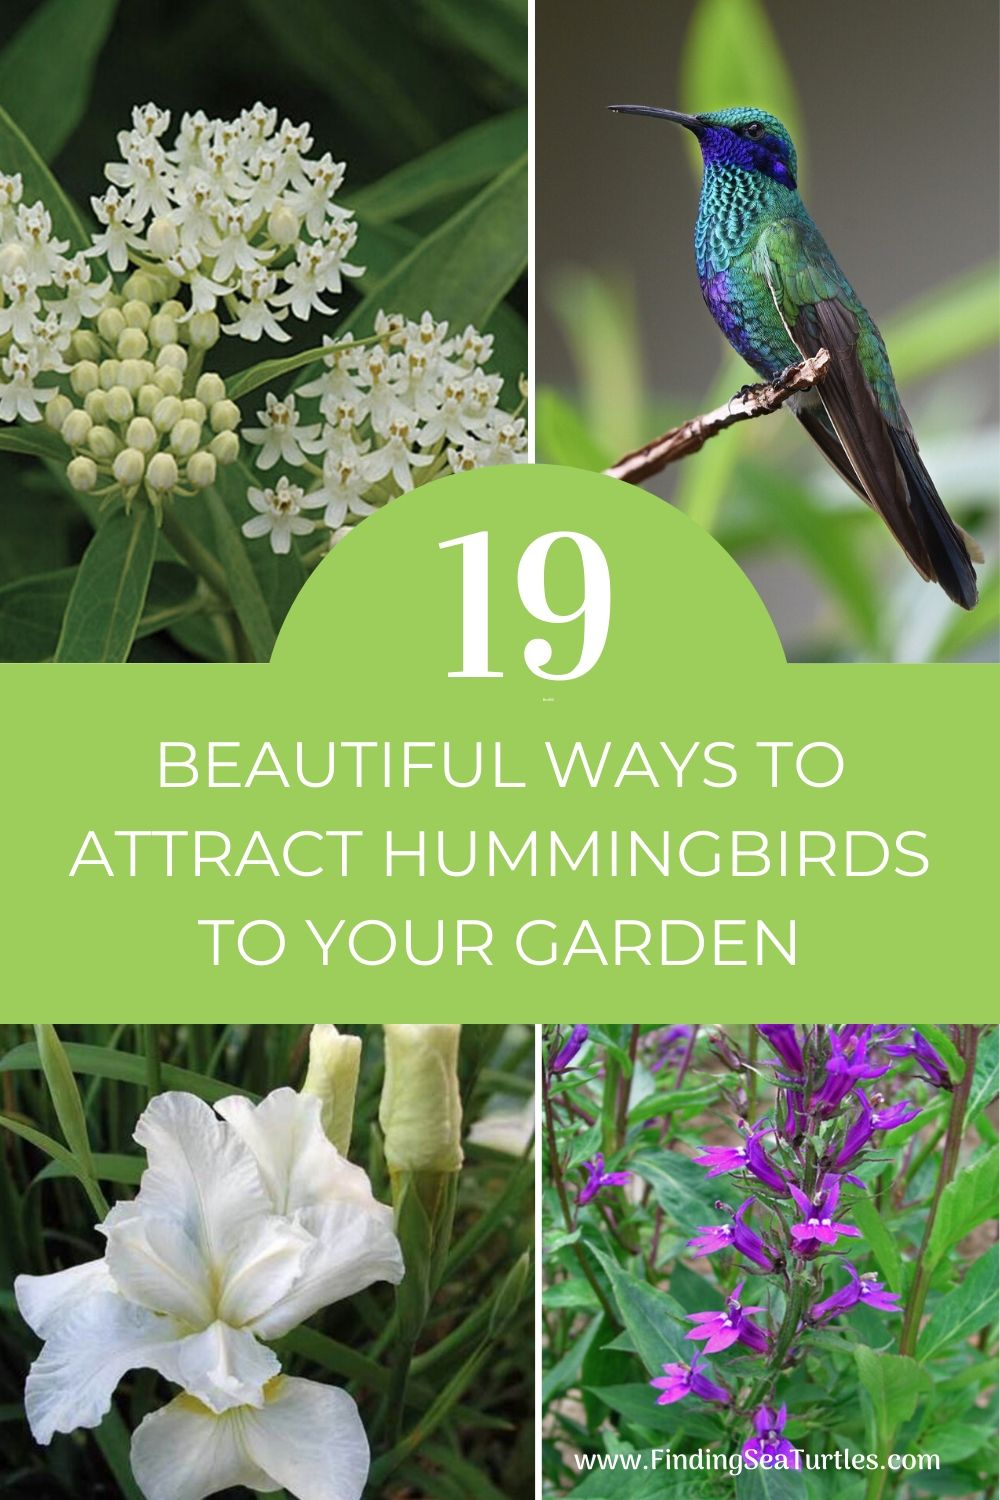 19 Beautiful Ways to Attract Hummingbirds to Your Garden #Hummingbirds #Garden #Gardening #Plants #GardenPollinators #AttractHummingbirds #NectarRichPlants #BeneficialForPollinators